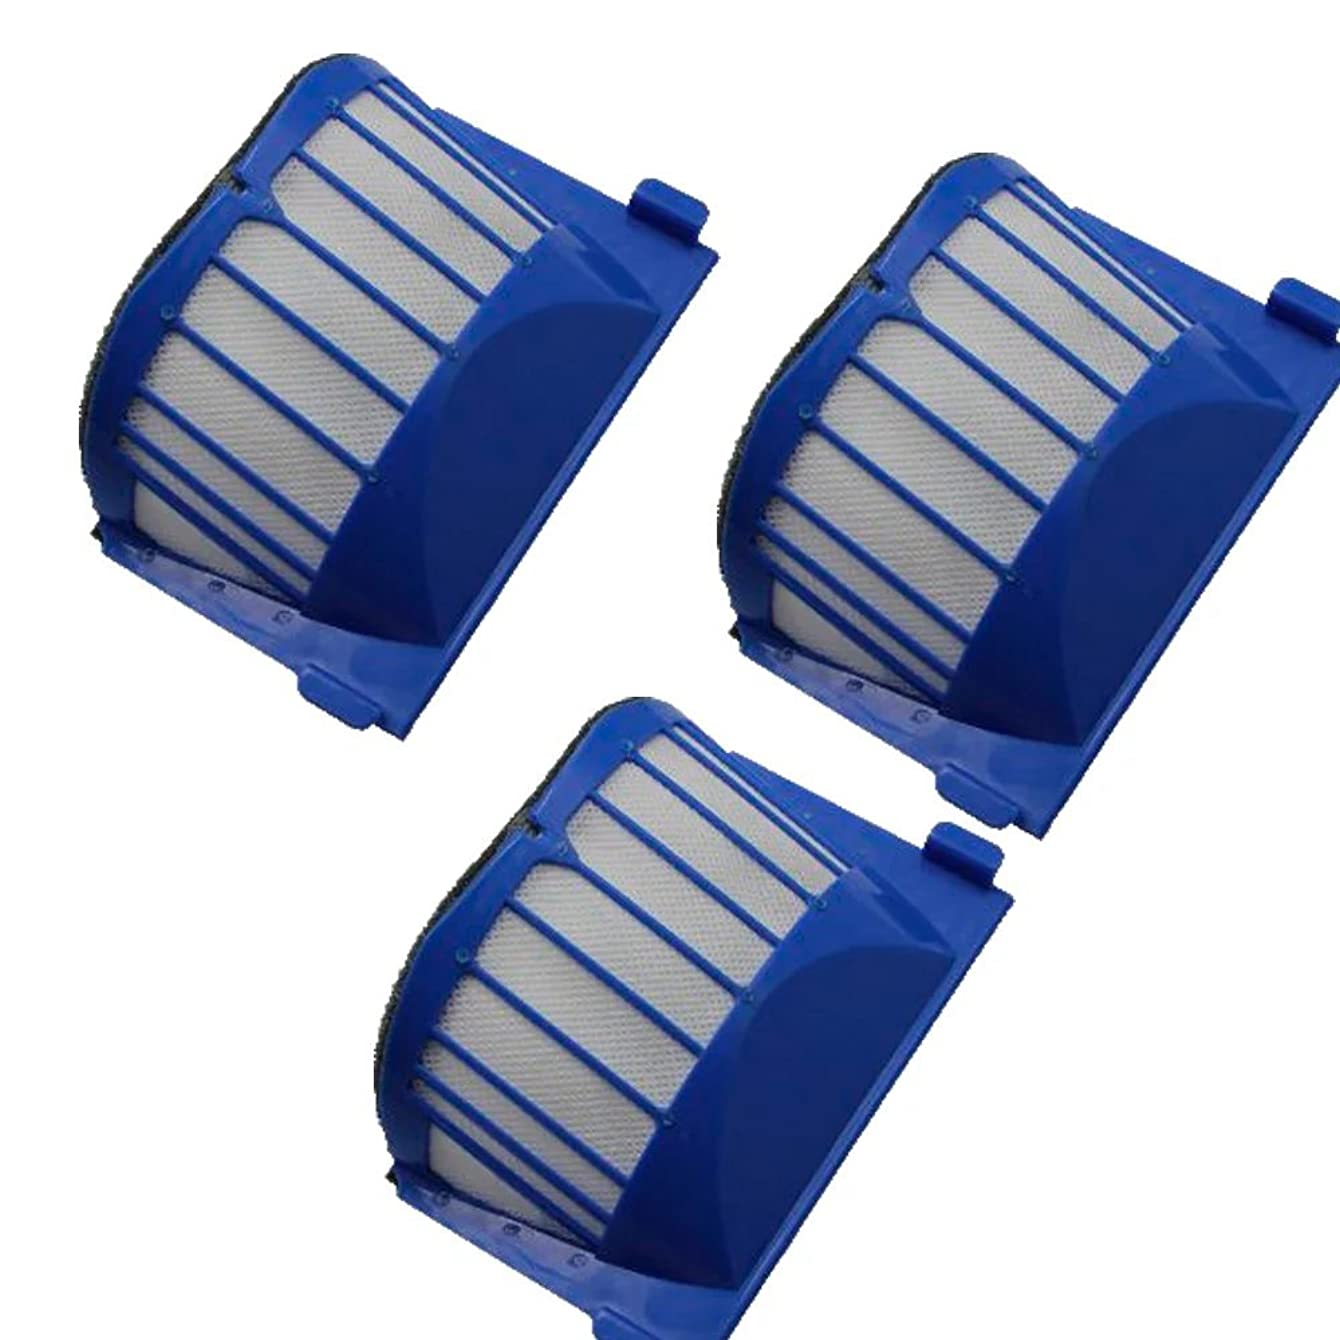 ANBOO 3pcs Aero Vac Filter For iRobot Roomba 500 600 Series 536,550,551,552,564, 585, 595, 600,620, 650 Replacements AeroVac Vacuum Cleaner Accessory